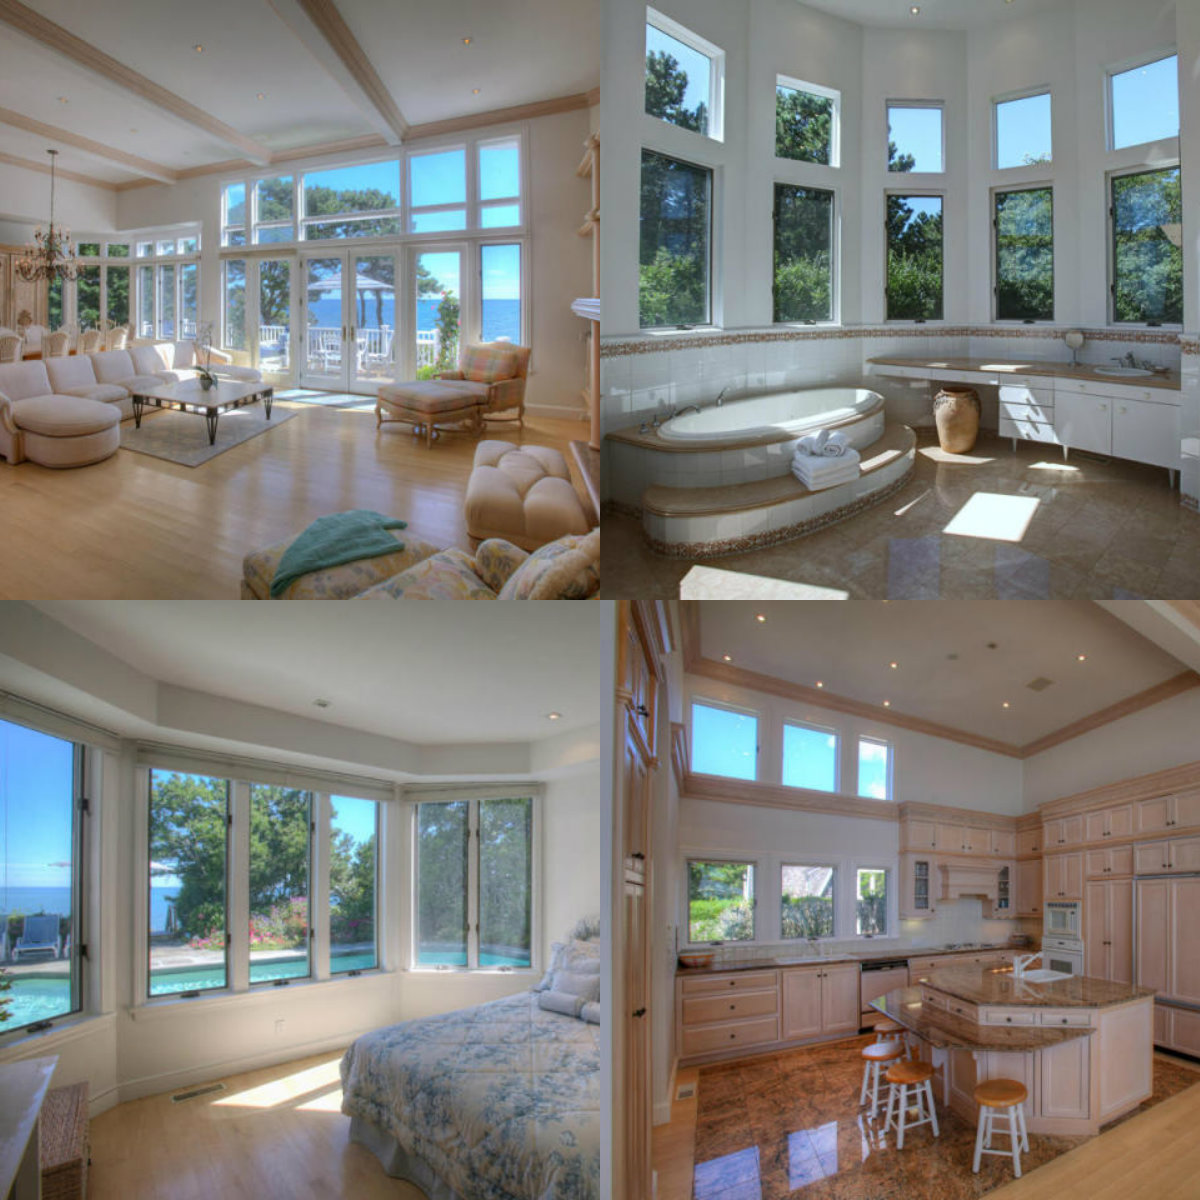 Images of rooms with windows in 27 Ocean Bluff Drive in Mashpee on Cape Cod MA